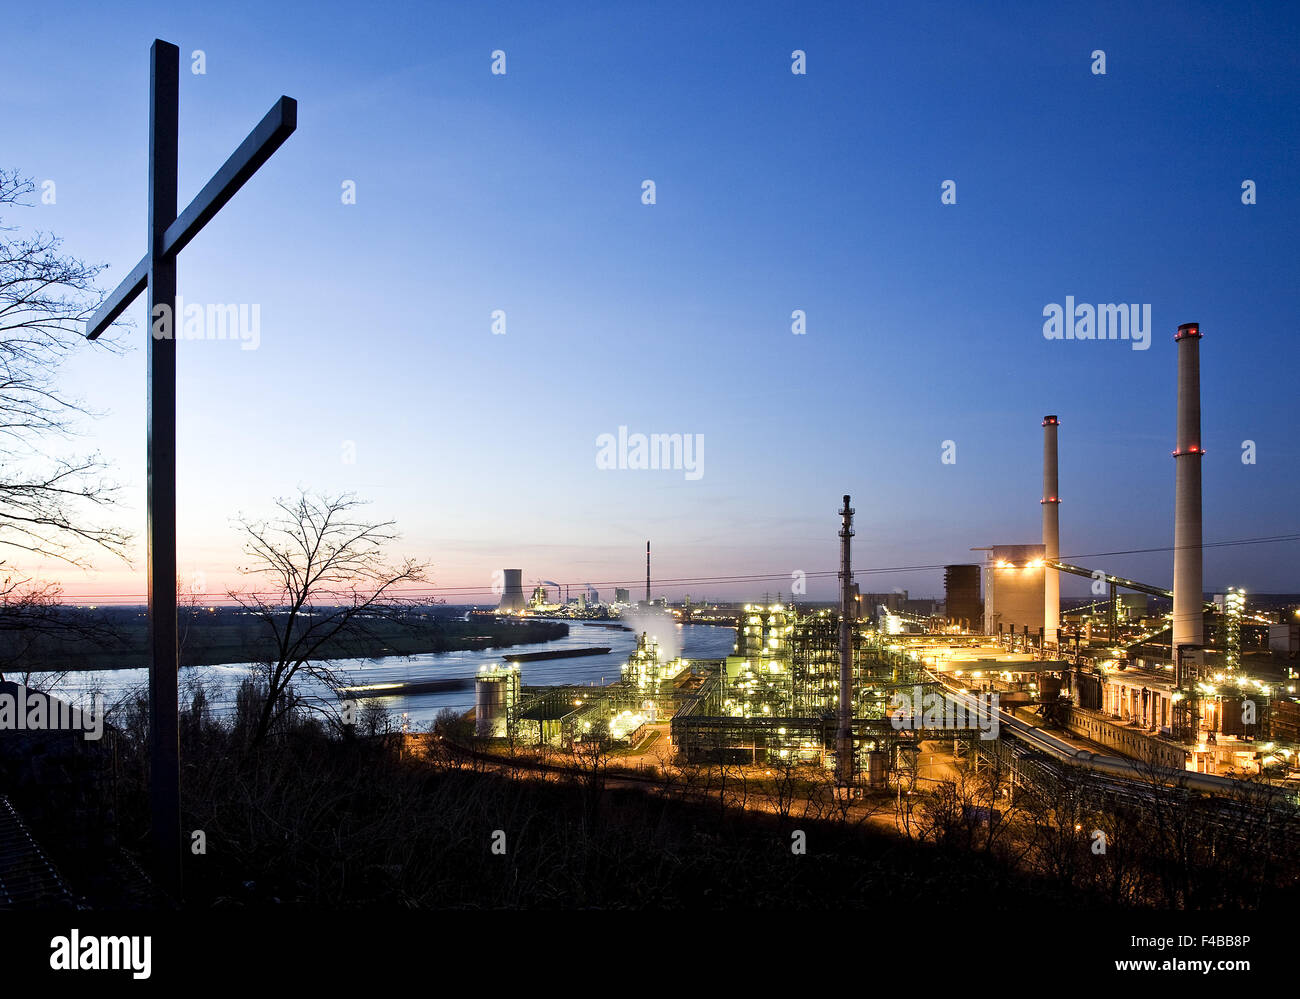 Viewpoint Alsumer mountain, Duisburg, Germany. - Stock Image